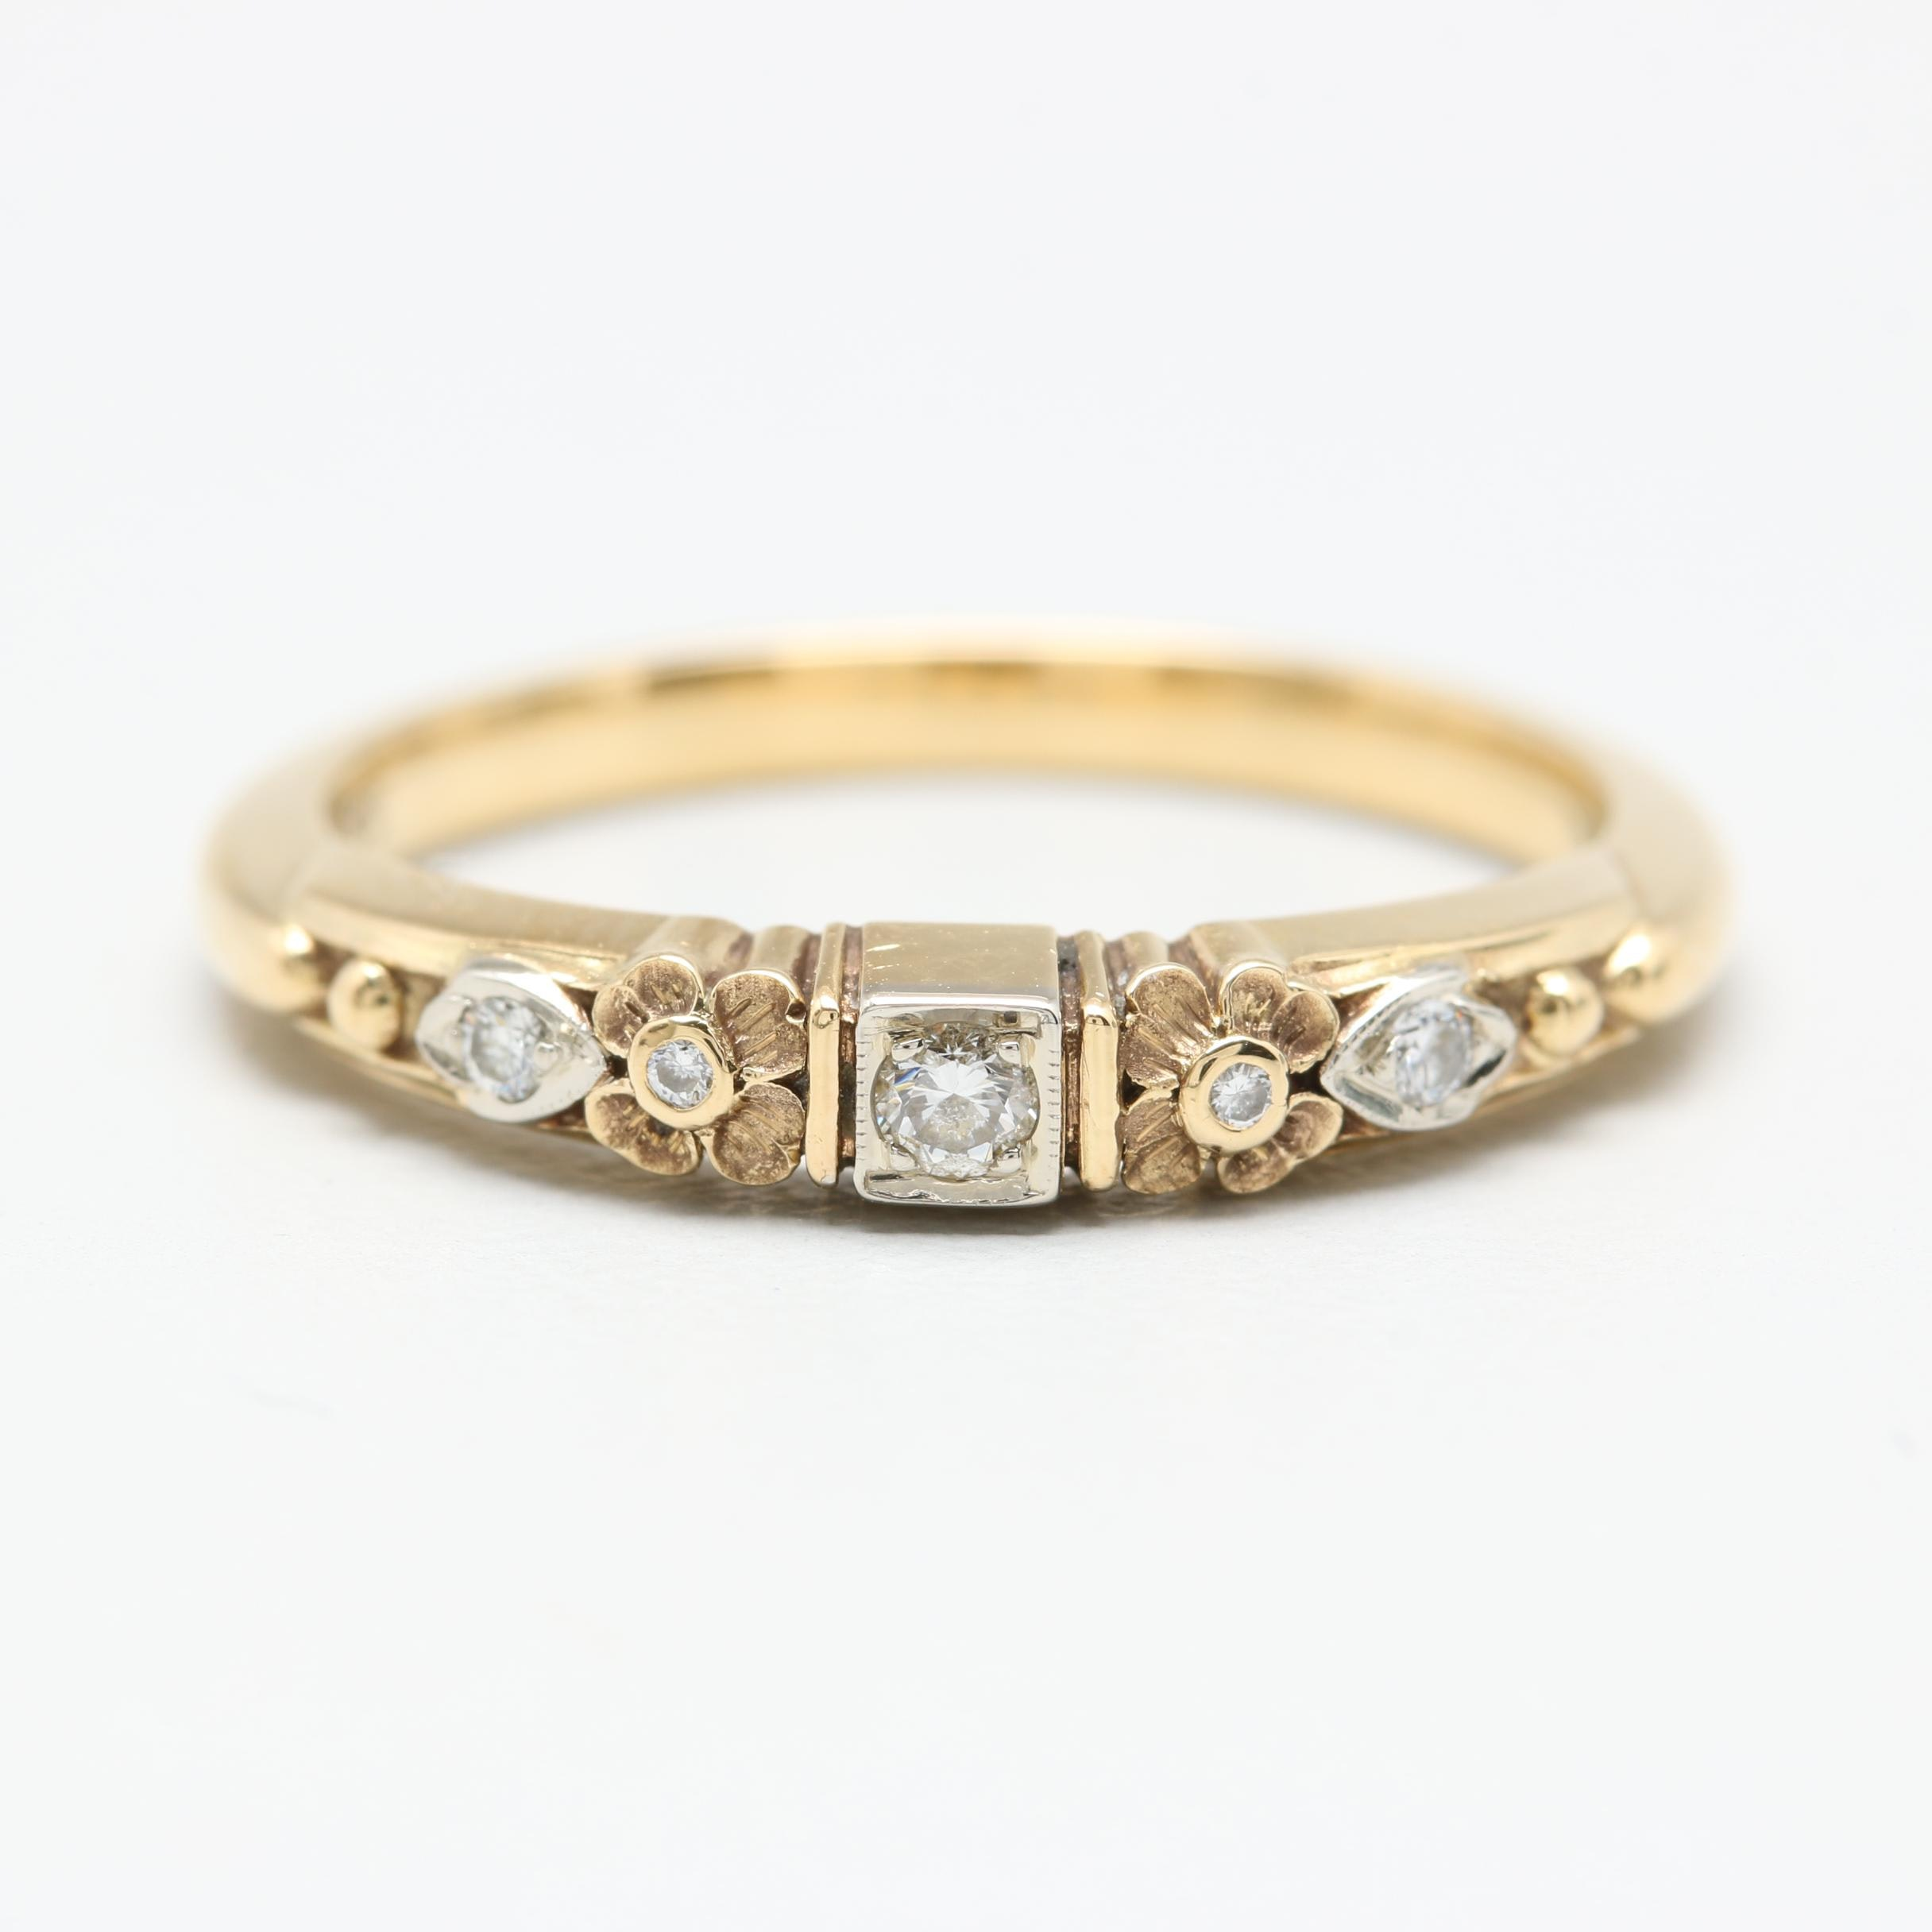 18K Yellow Gold Diamond Floral Motif Ring